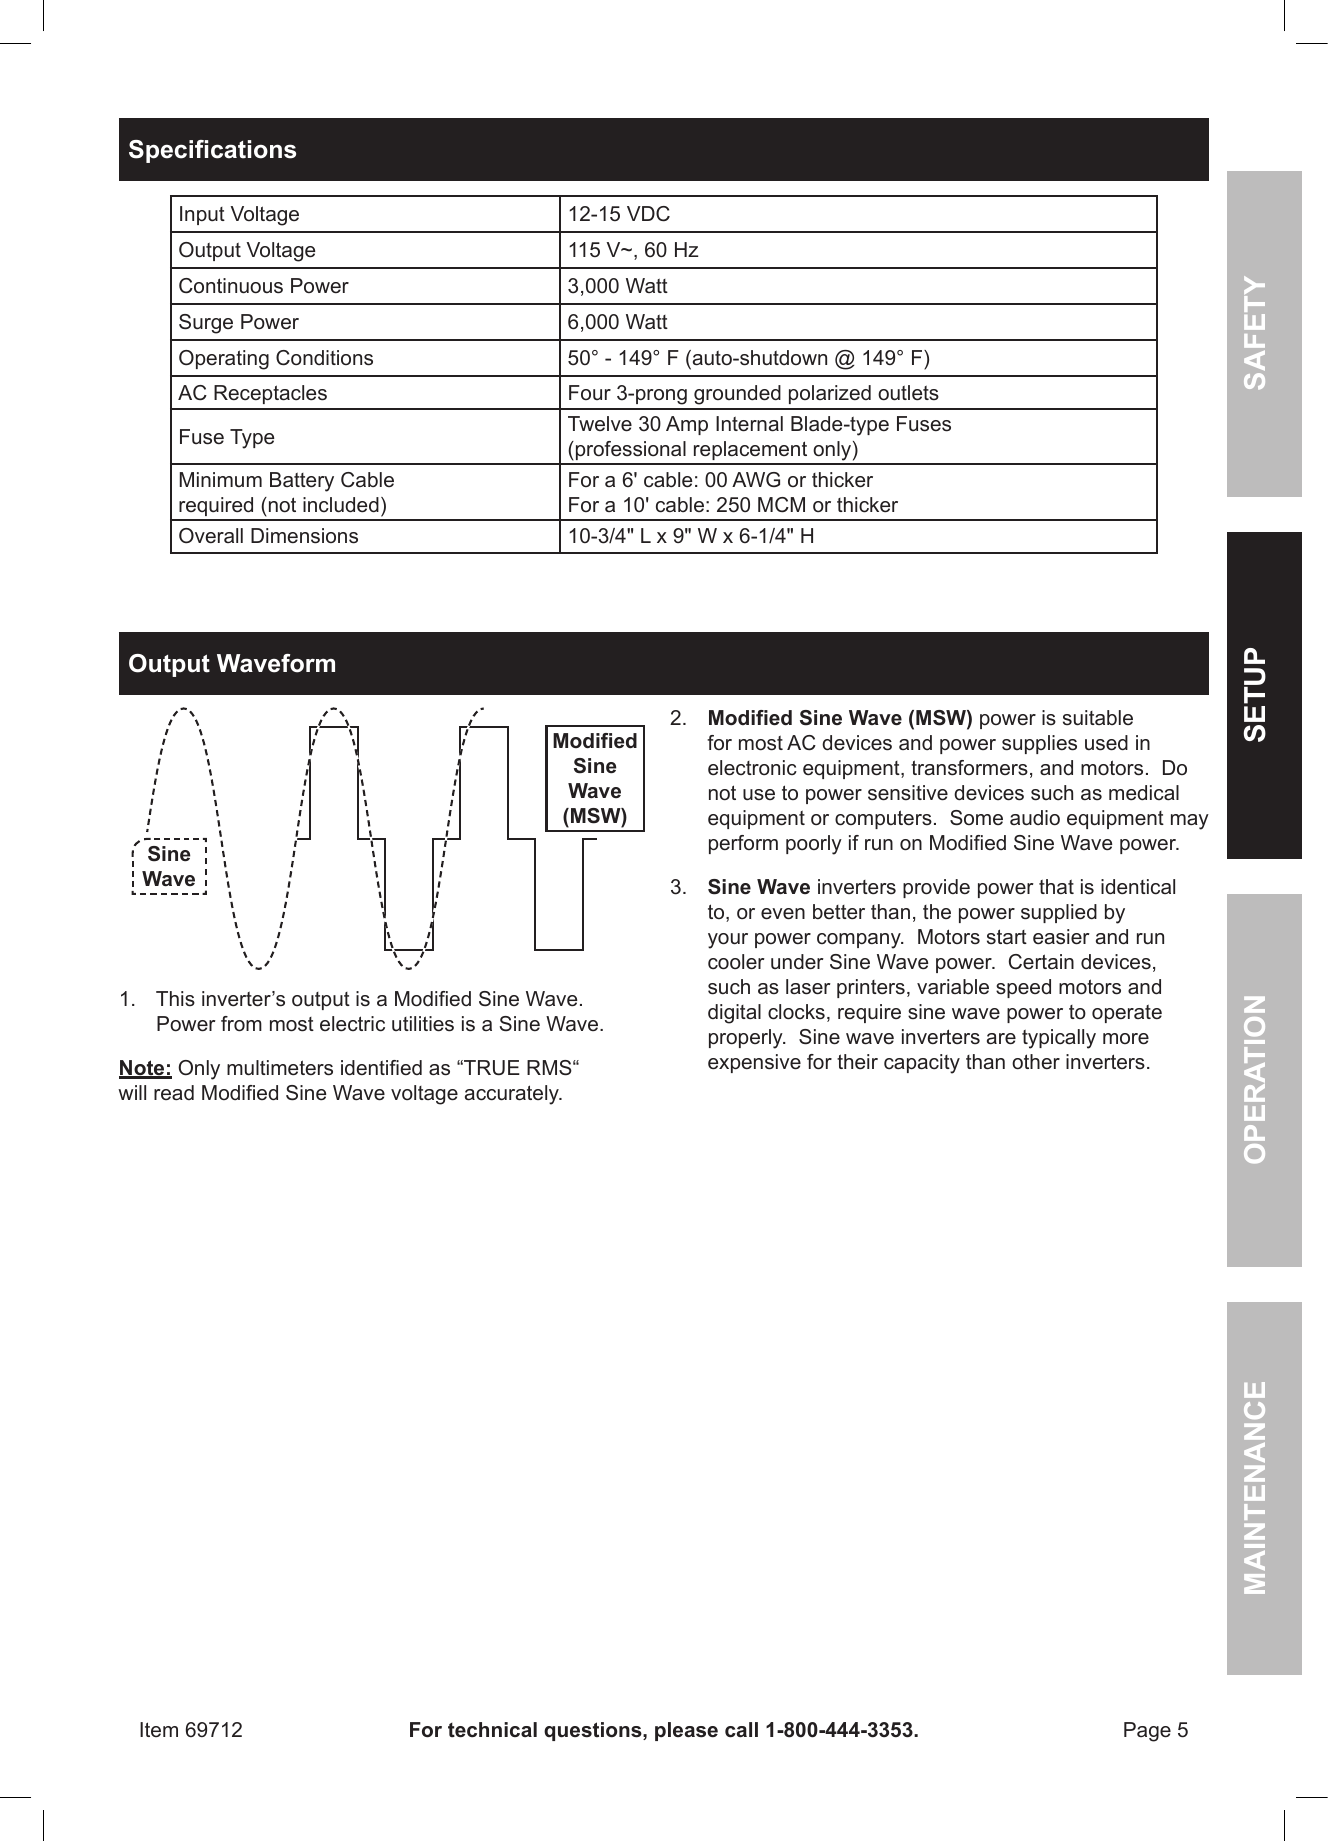 Harbor Freight 3000 Watt Continuous 6000 Peak Power Inverter Product Digital Modified Sine Wave Circuit 250 Watts Electronic Page 5 Of 12